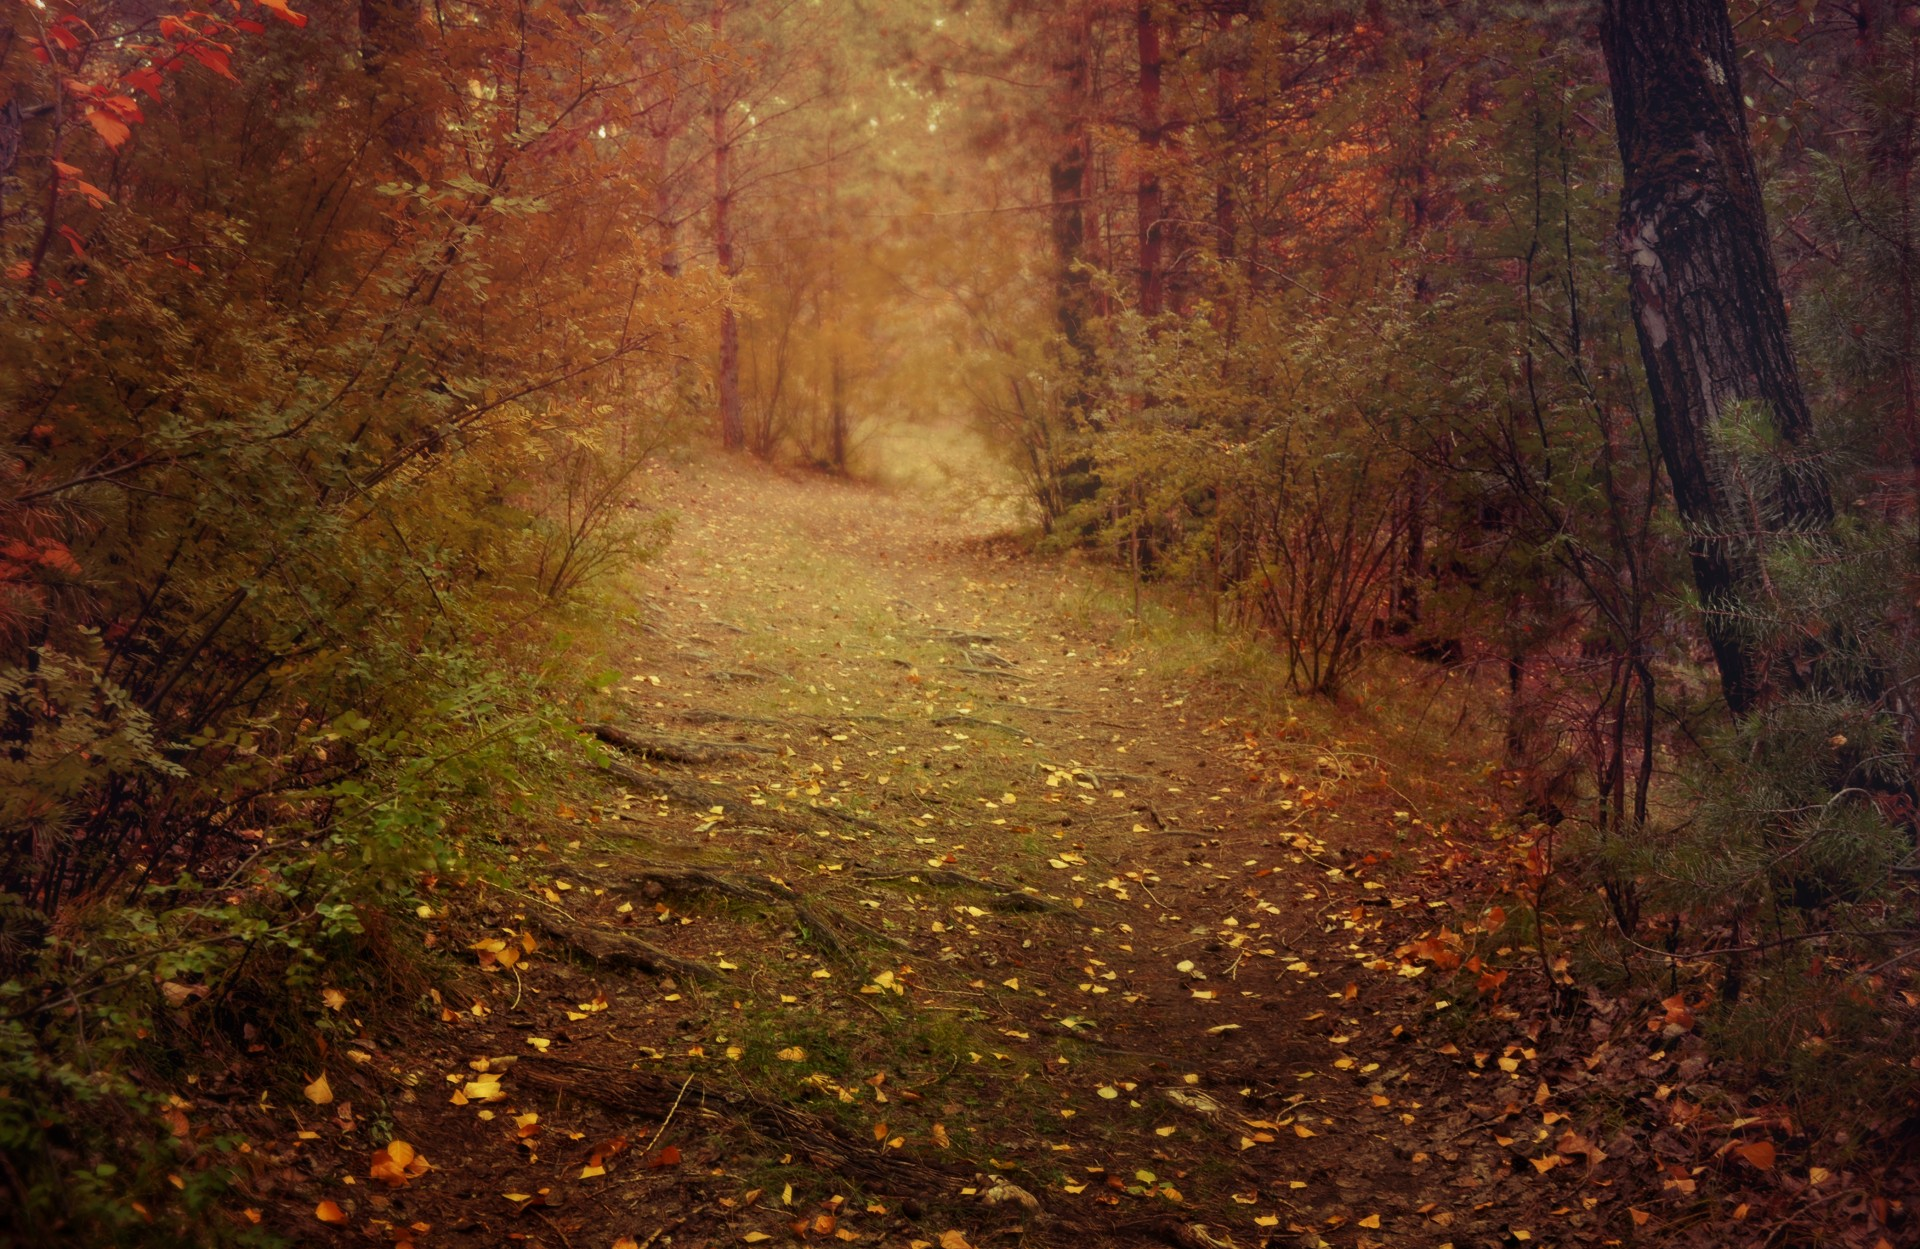 Fall Leaves Pathway Computer Wallpaper Autumn Dream Free Stock Photo Public Domain Pictures